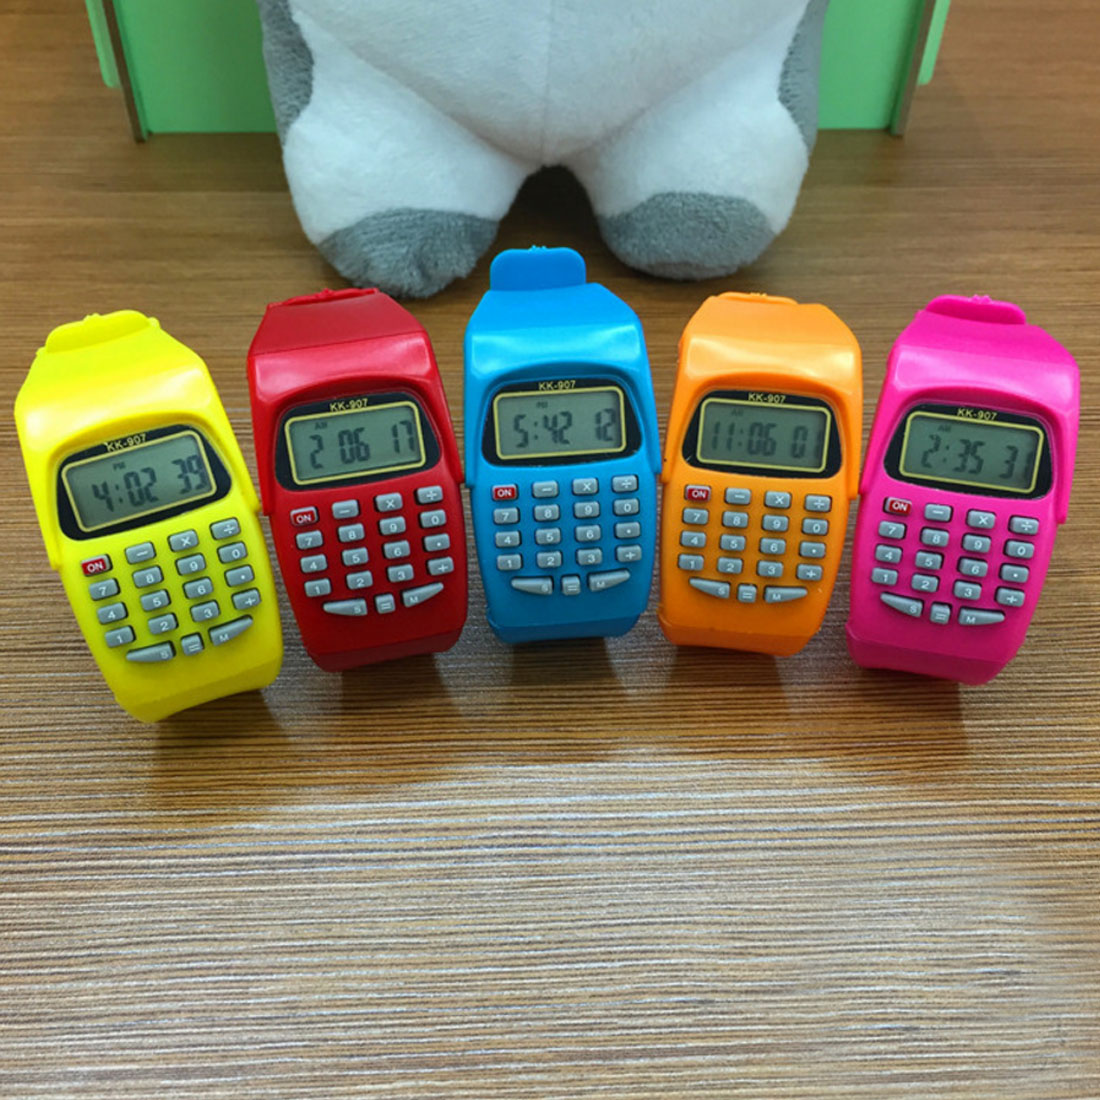 все цены на NOYOKERE Fashion Digital Calculator With LED Watch Function Casual Silicone Sports For Kids Children Multifunction Calculating онлайн